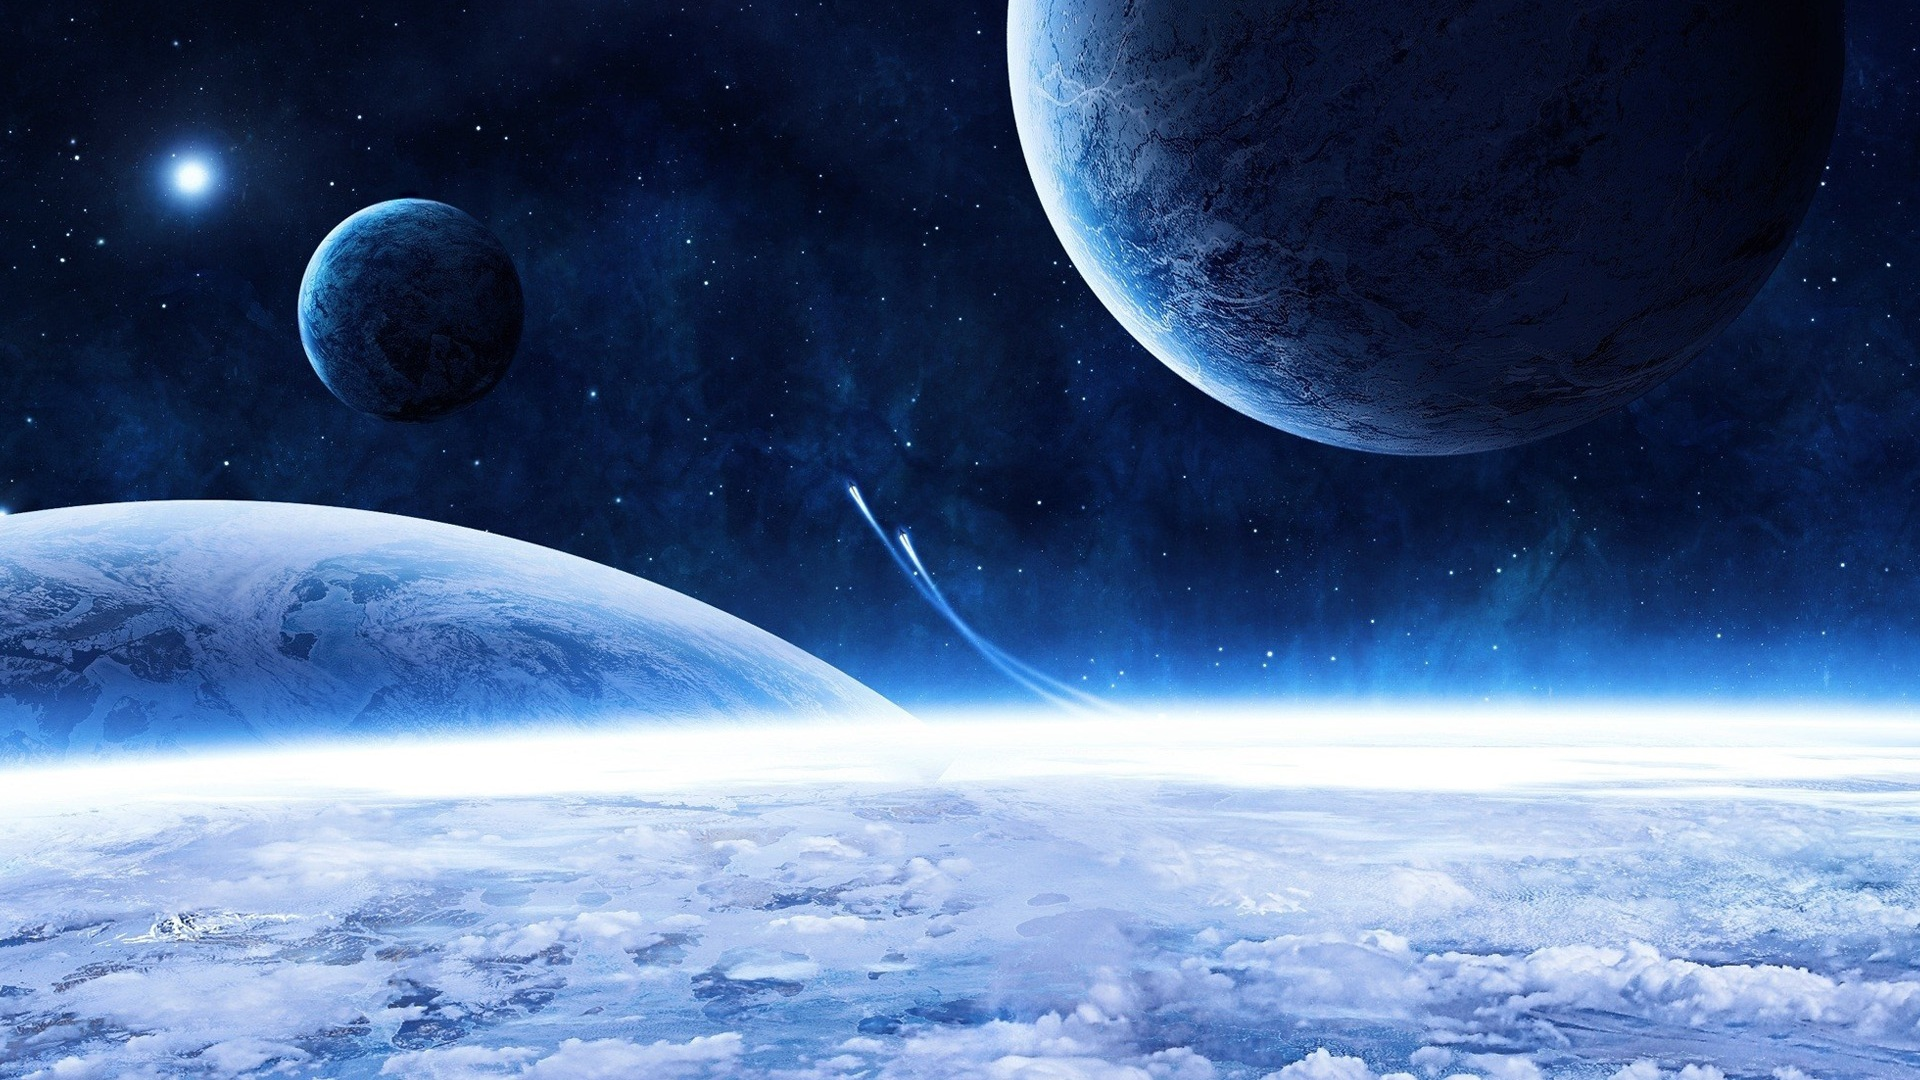 Wallpaper Space Ship And Blue Planet 1920x1200 Hd Picture Image